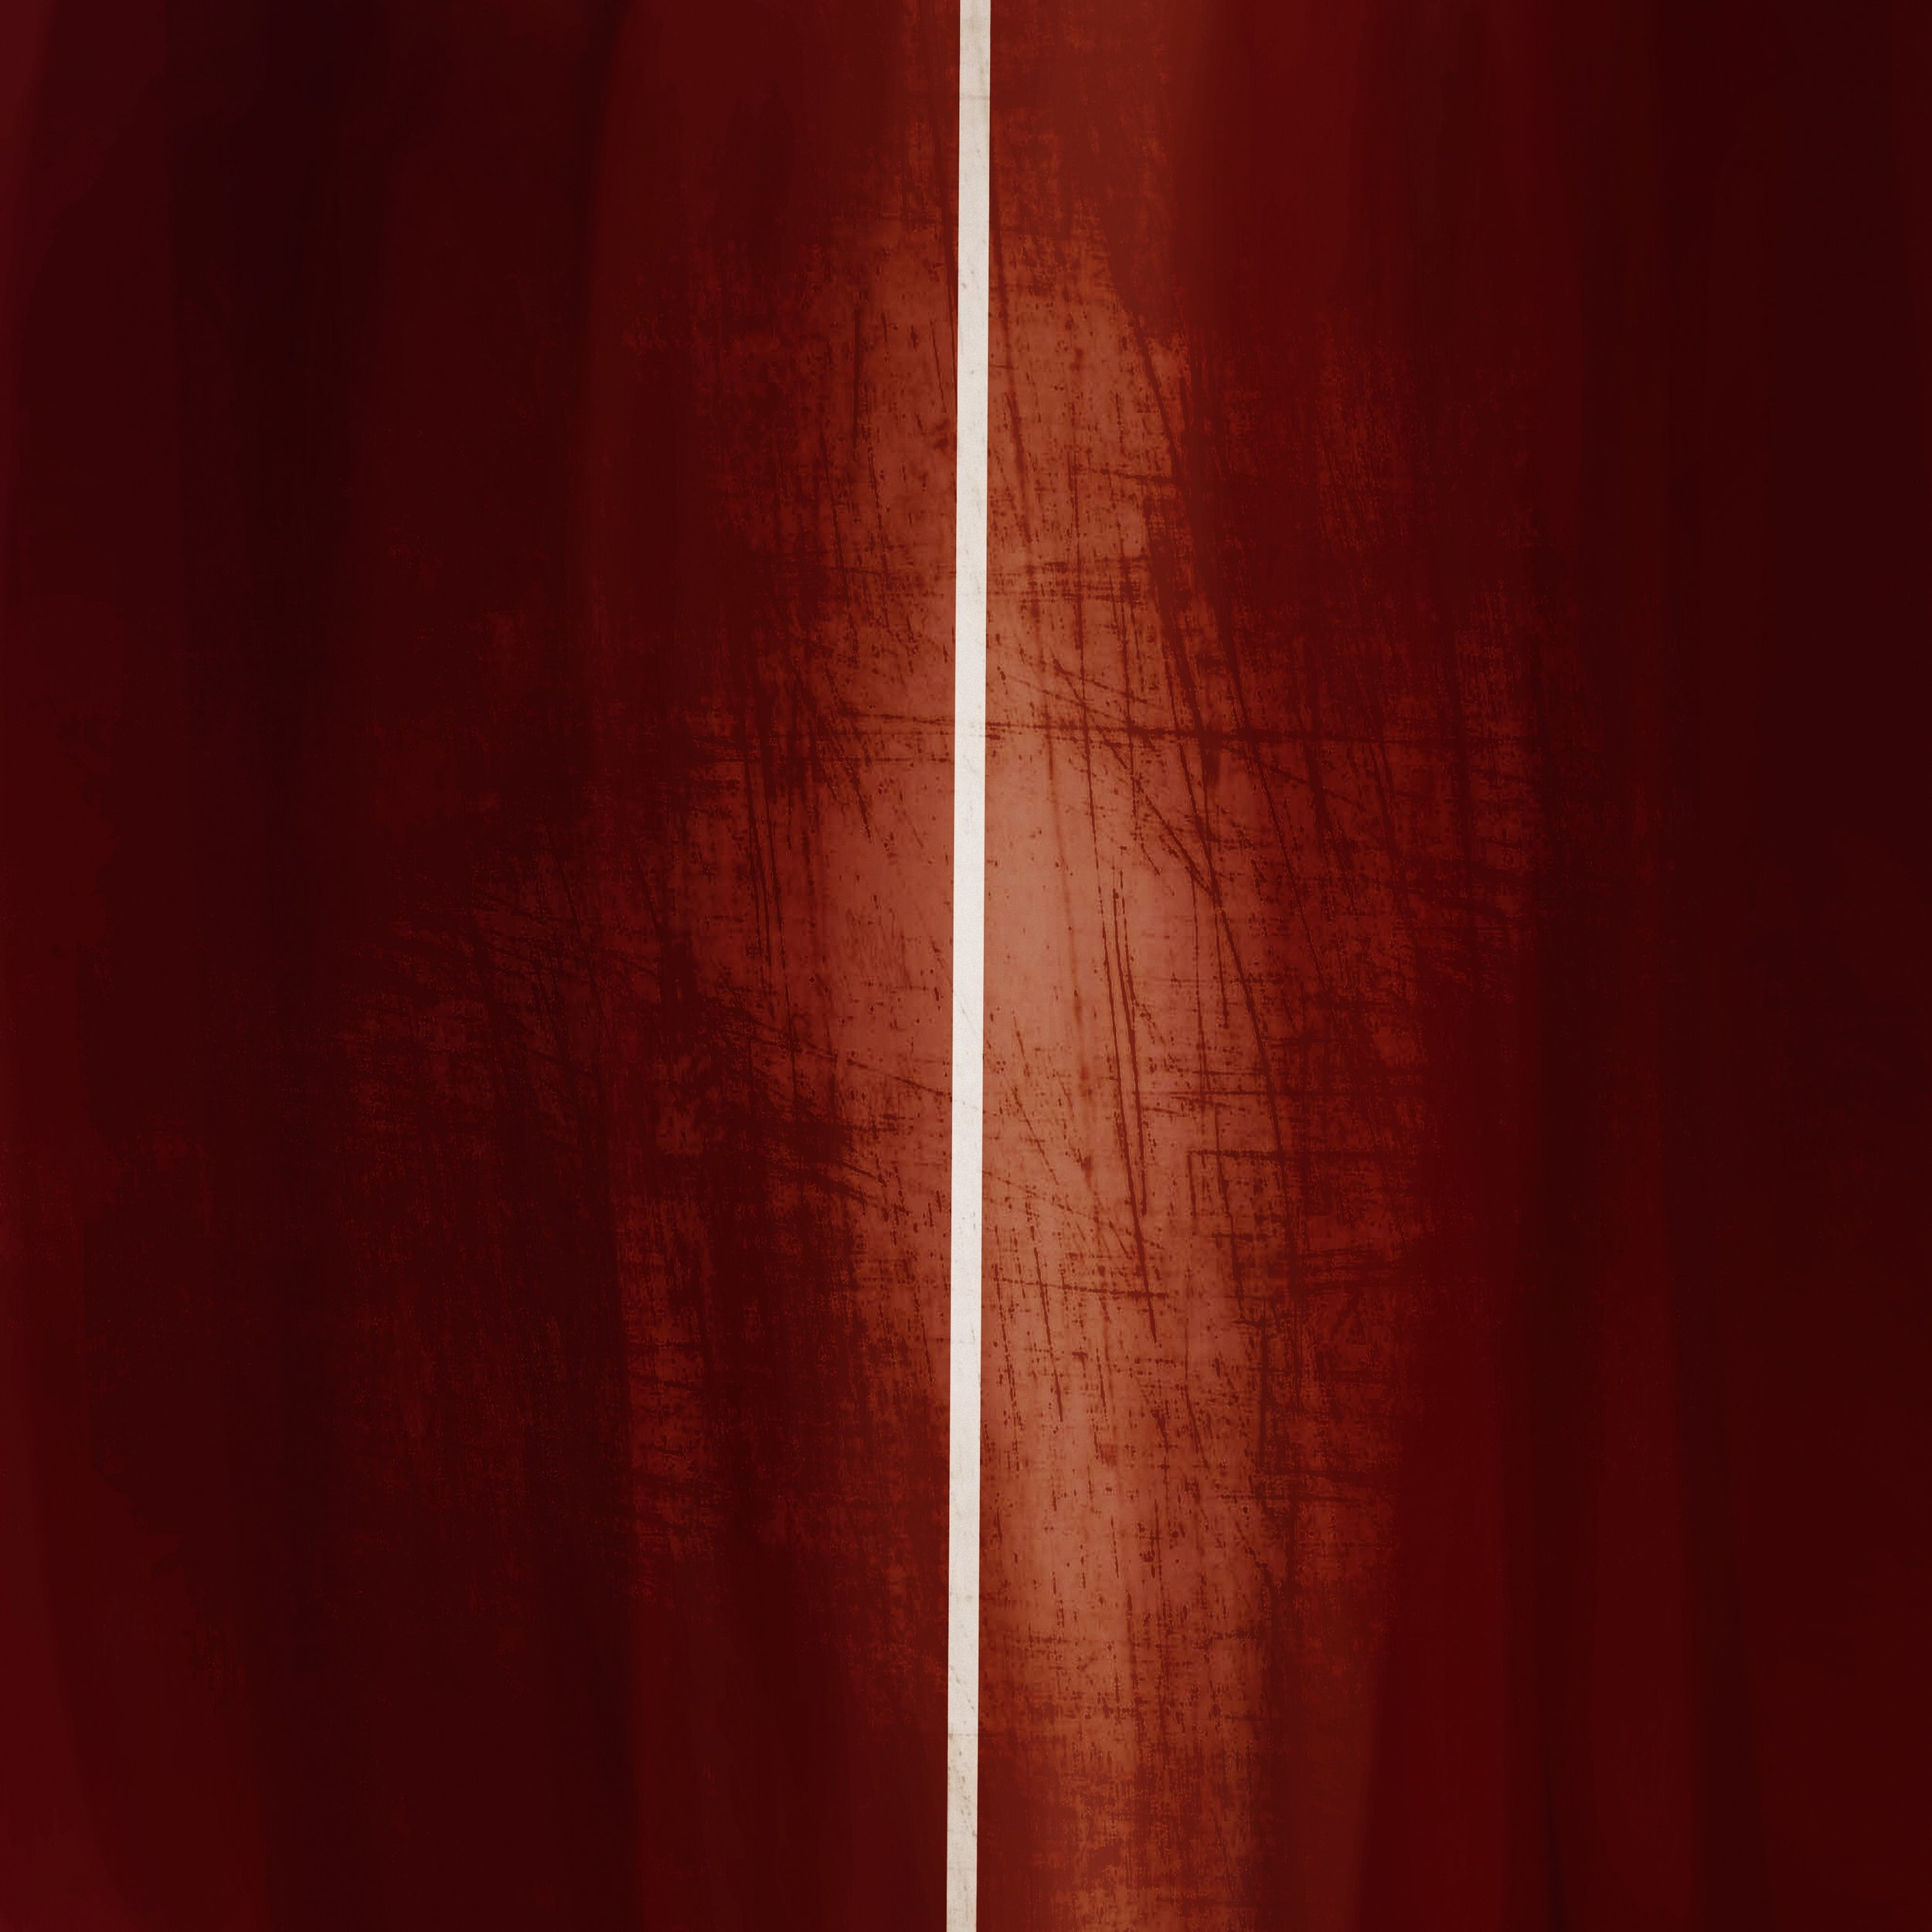 A Digital study by BSP, inspired by the work of Barnett Newman and Mark Rothko